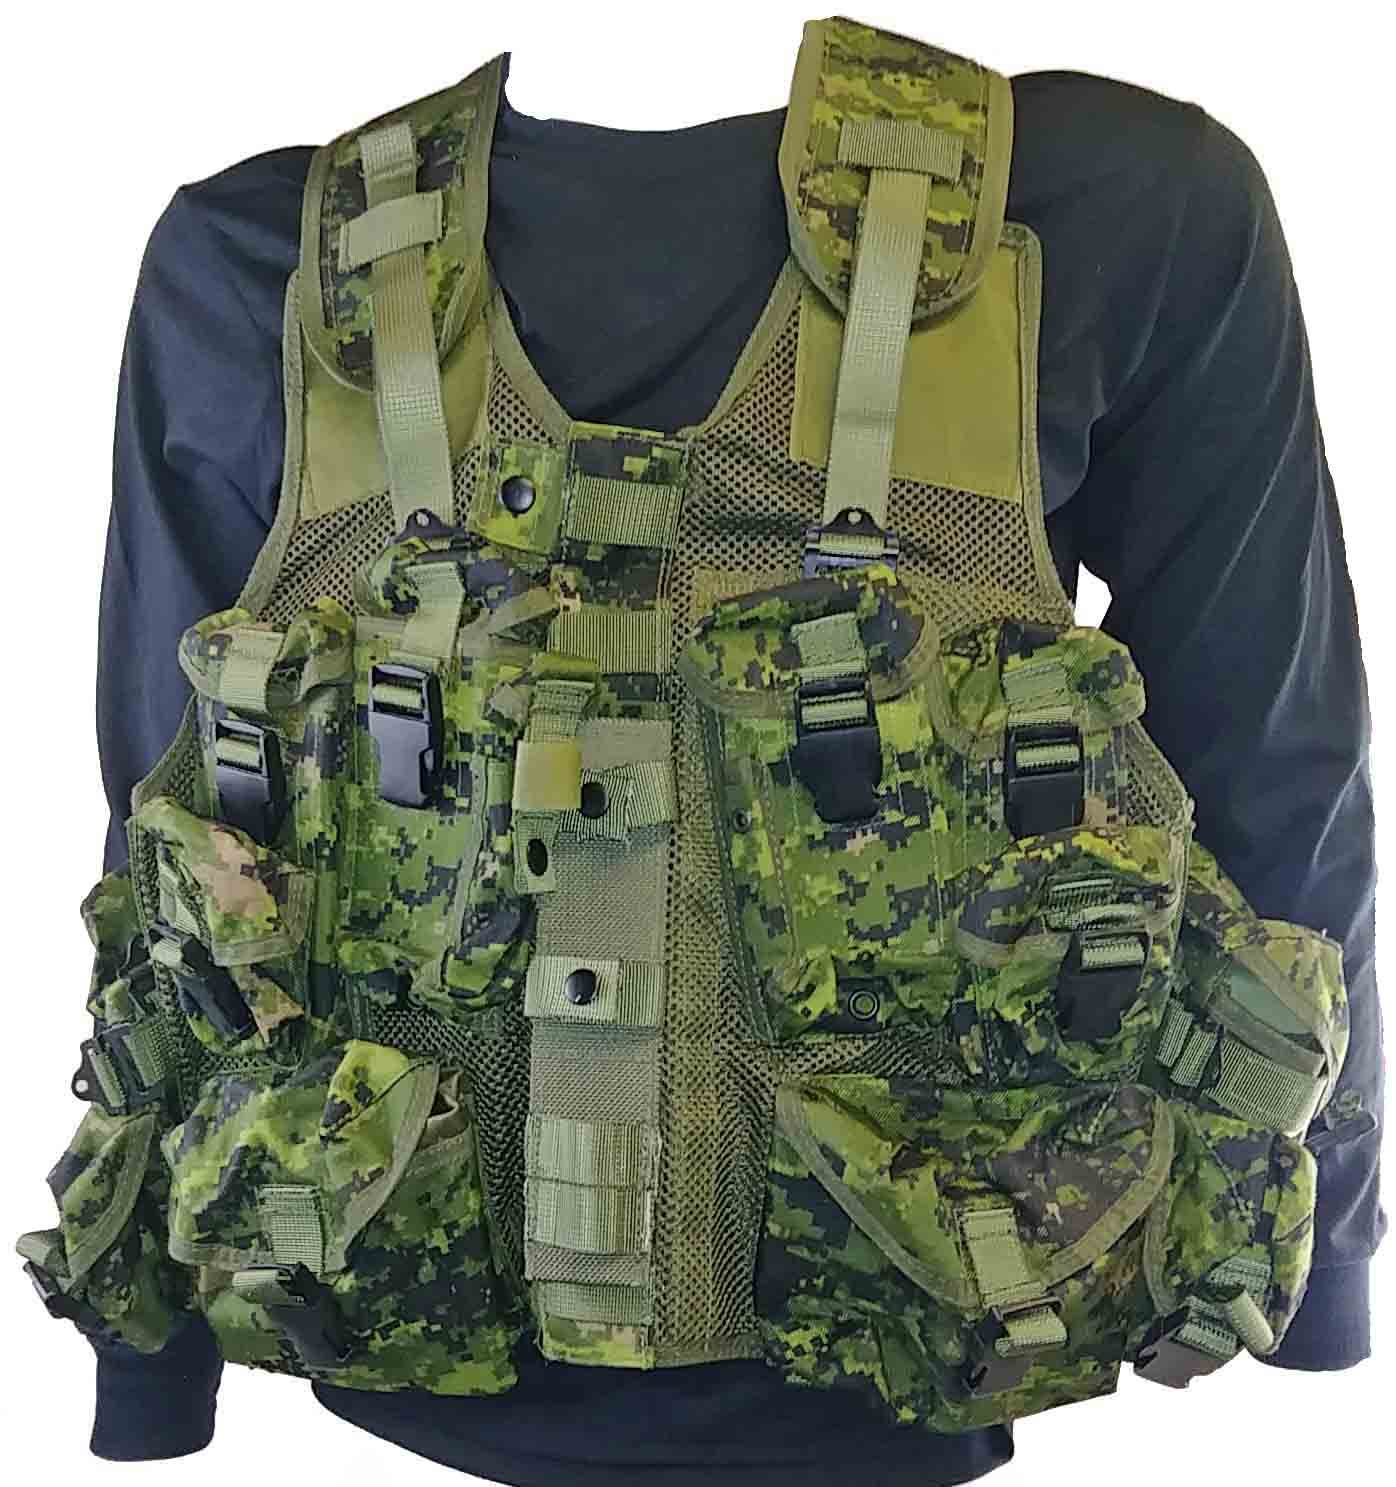 Tactical vest Canadian army style